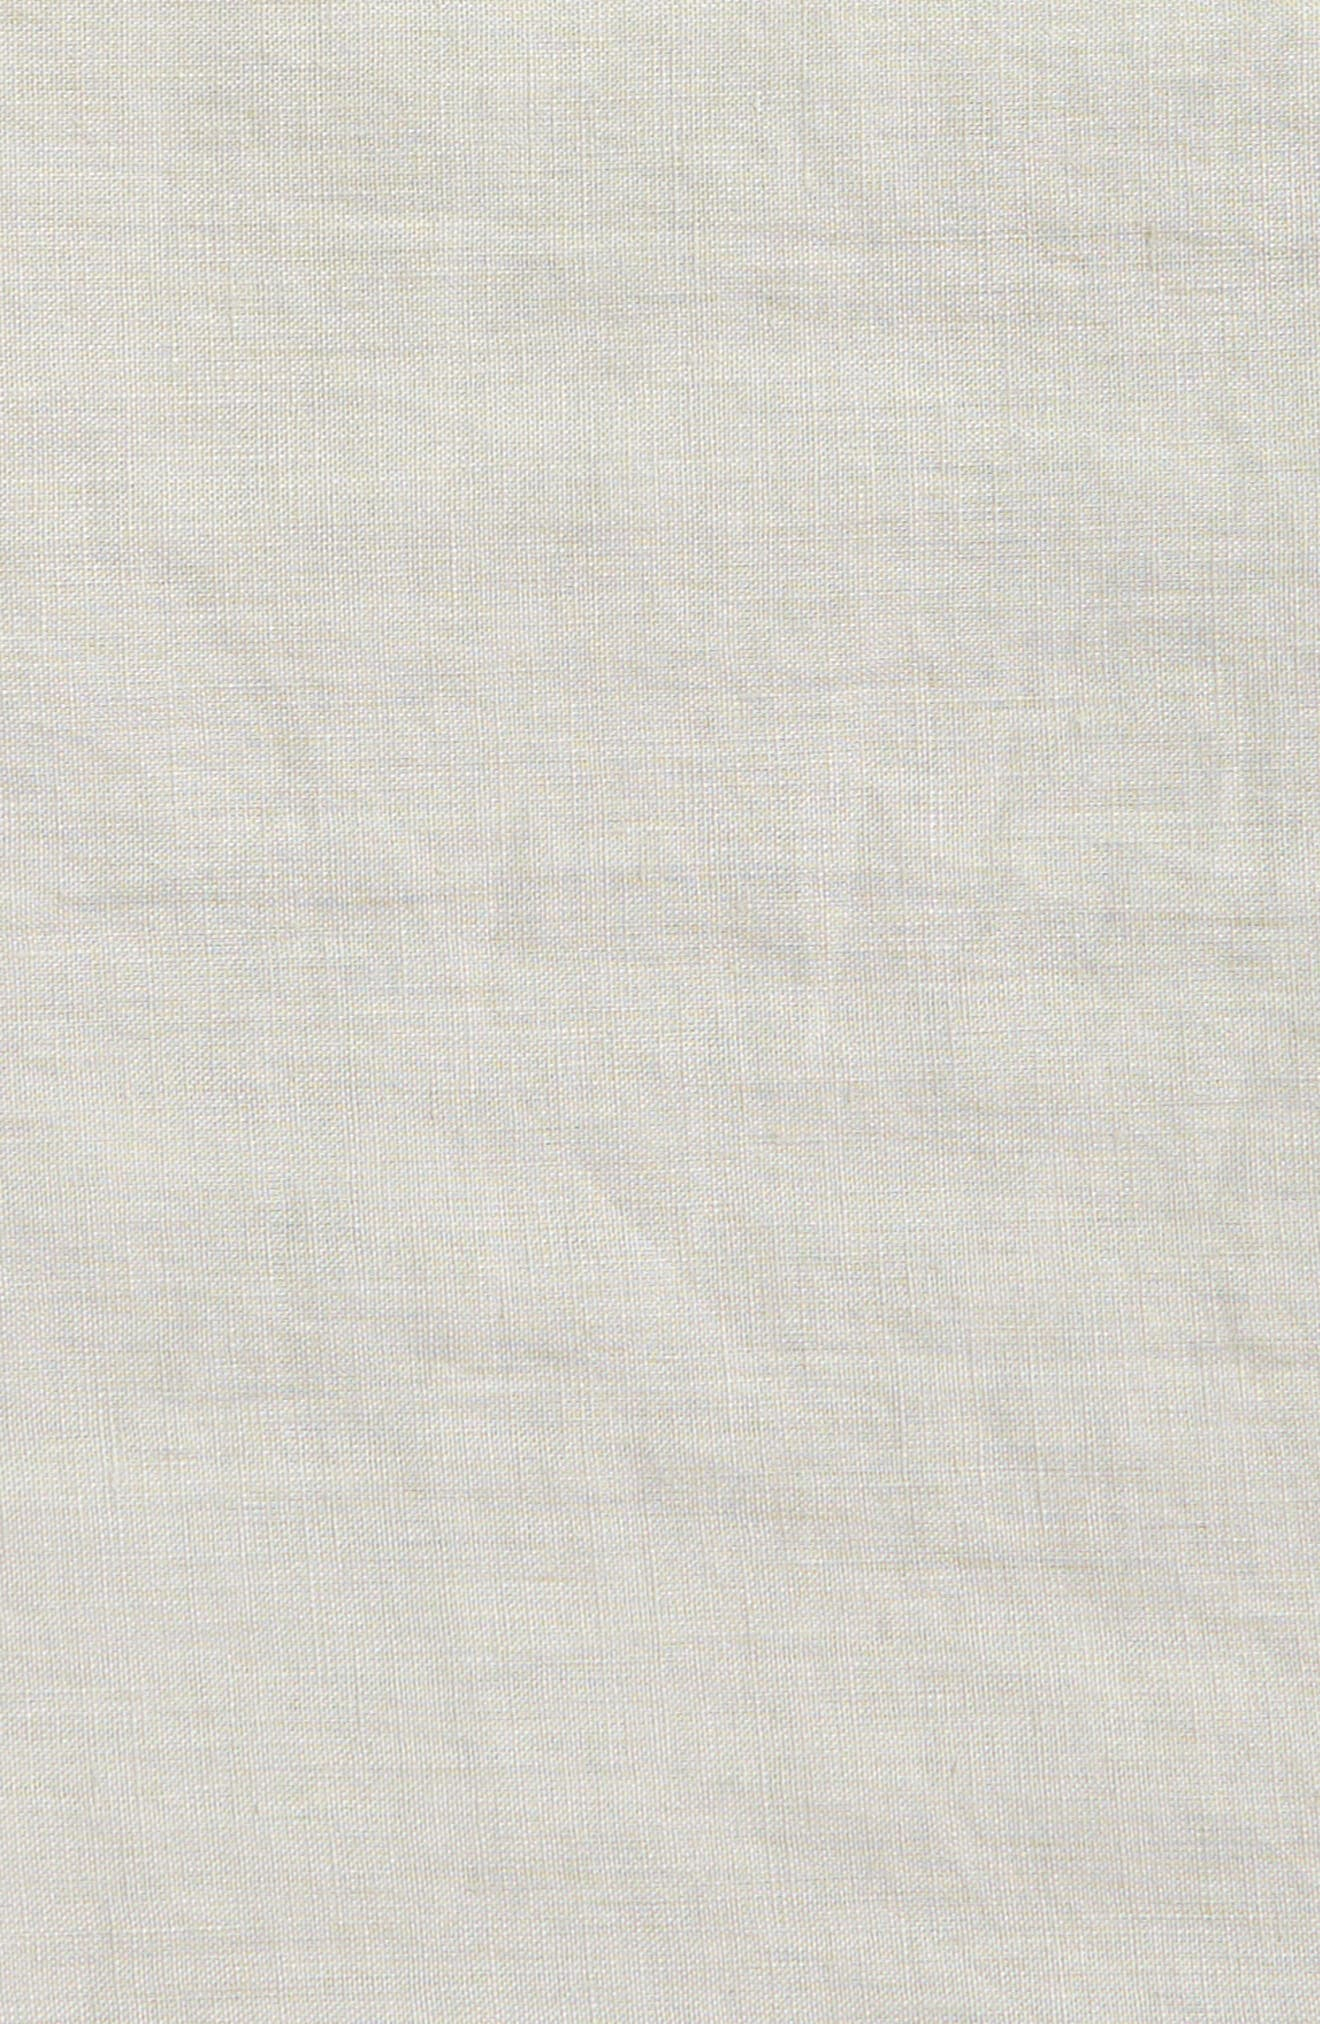 Round Linen Tablecloth,                             Alternate thumbnail 3, color,                             020